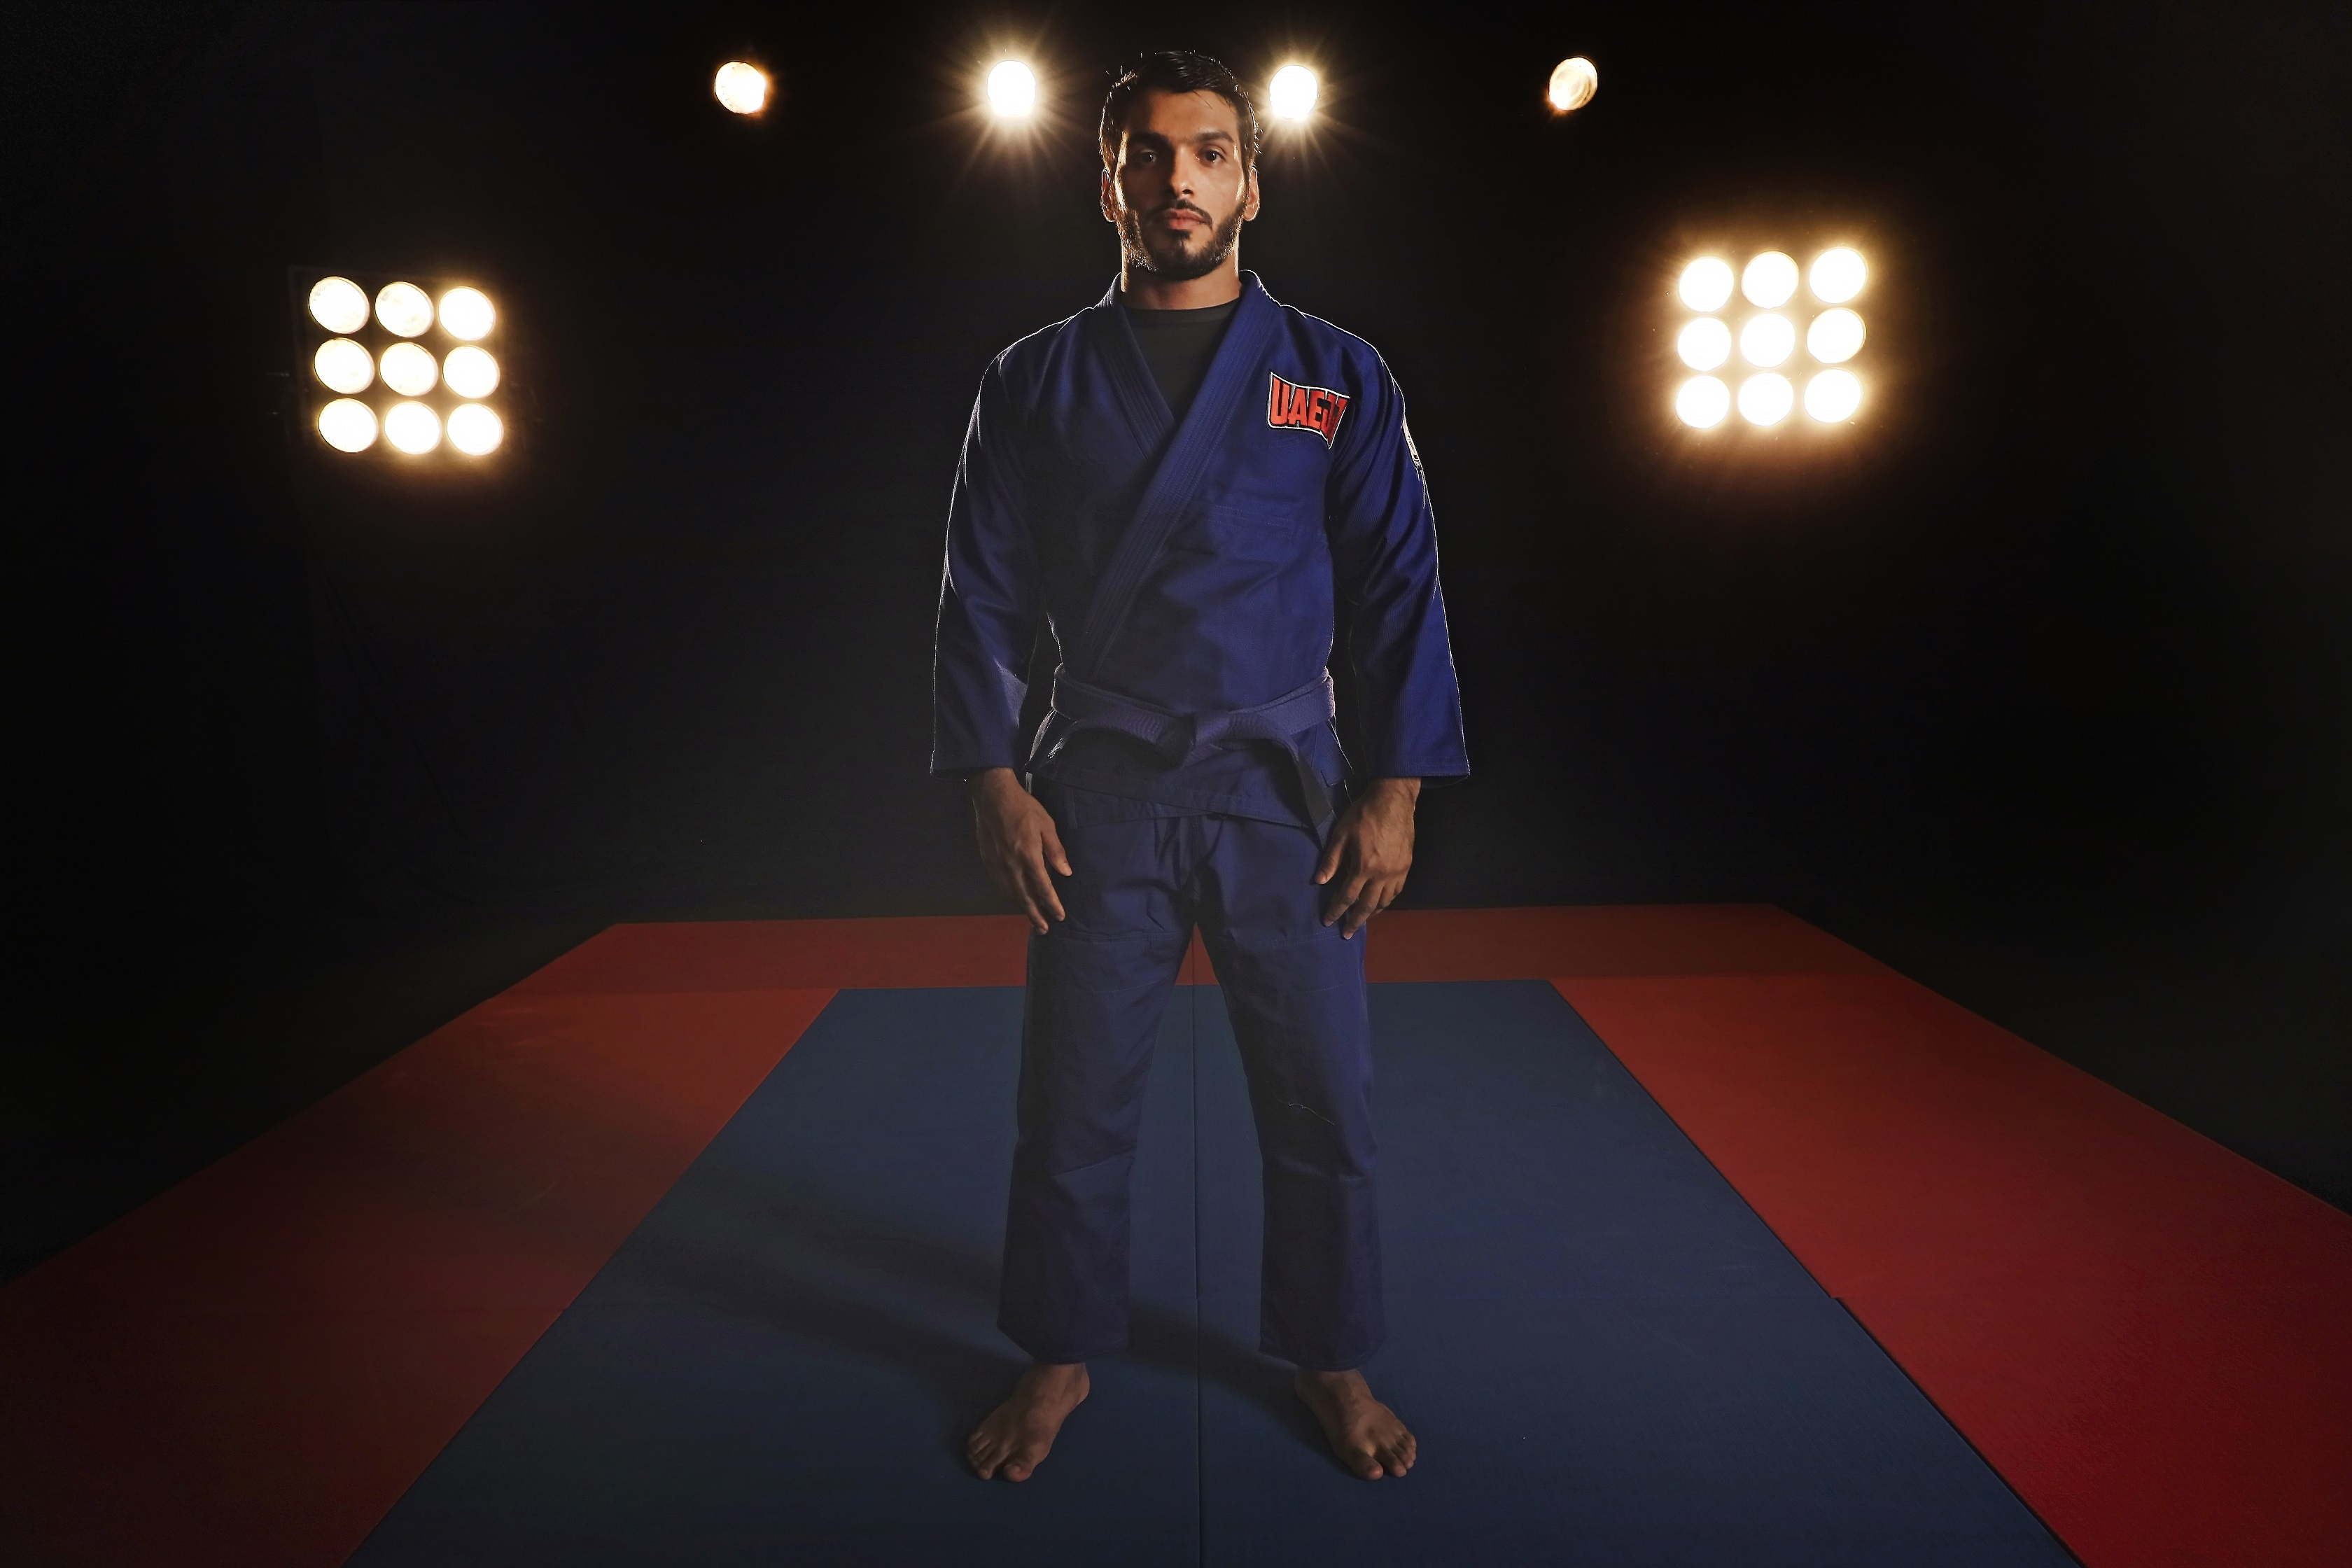 world's best jiu-jitsu heroes, local hopefuls dream of abu dhabi glory  2.jpg